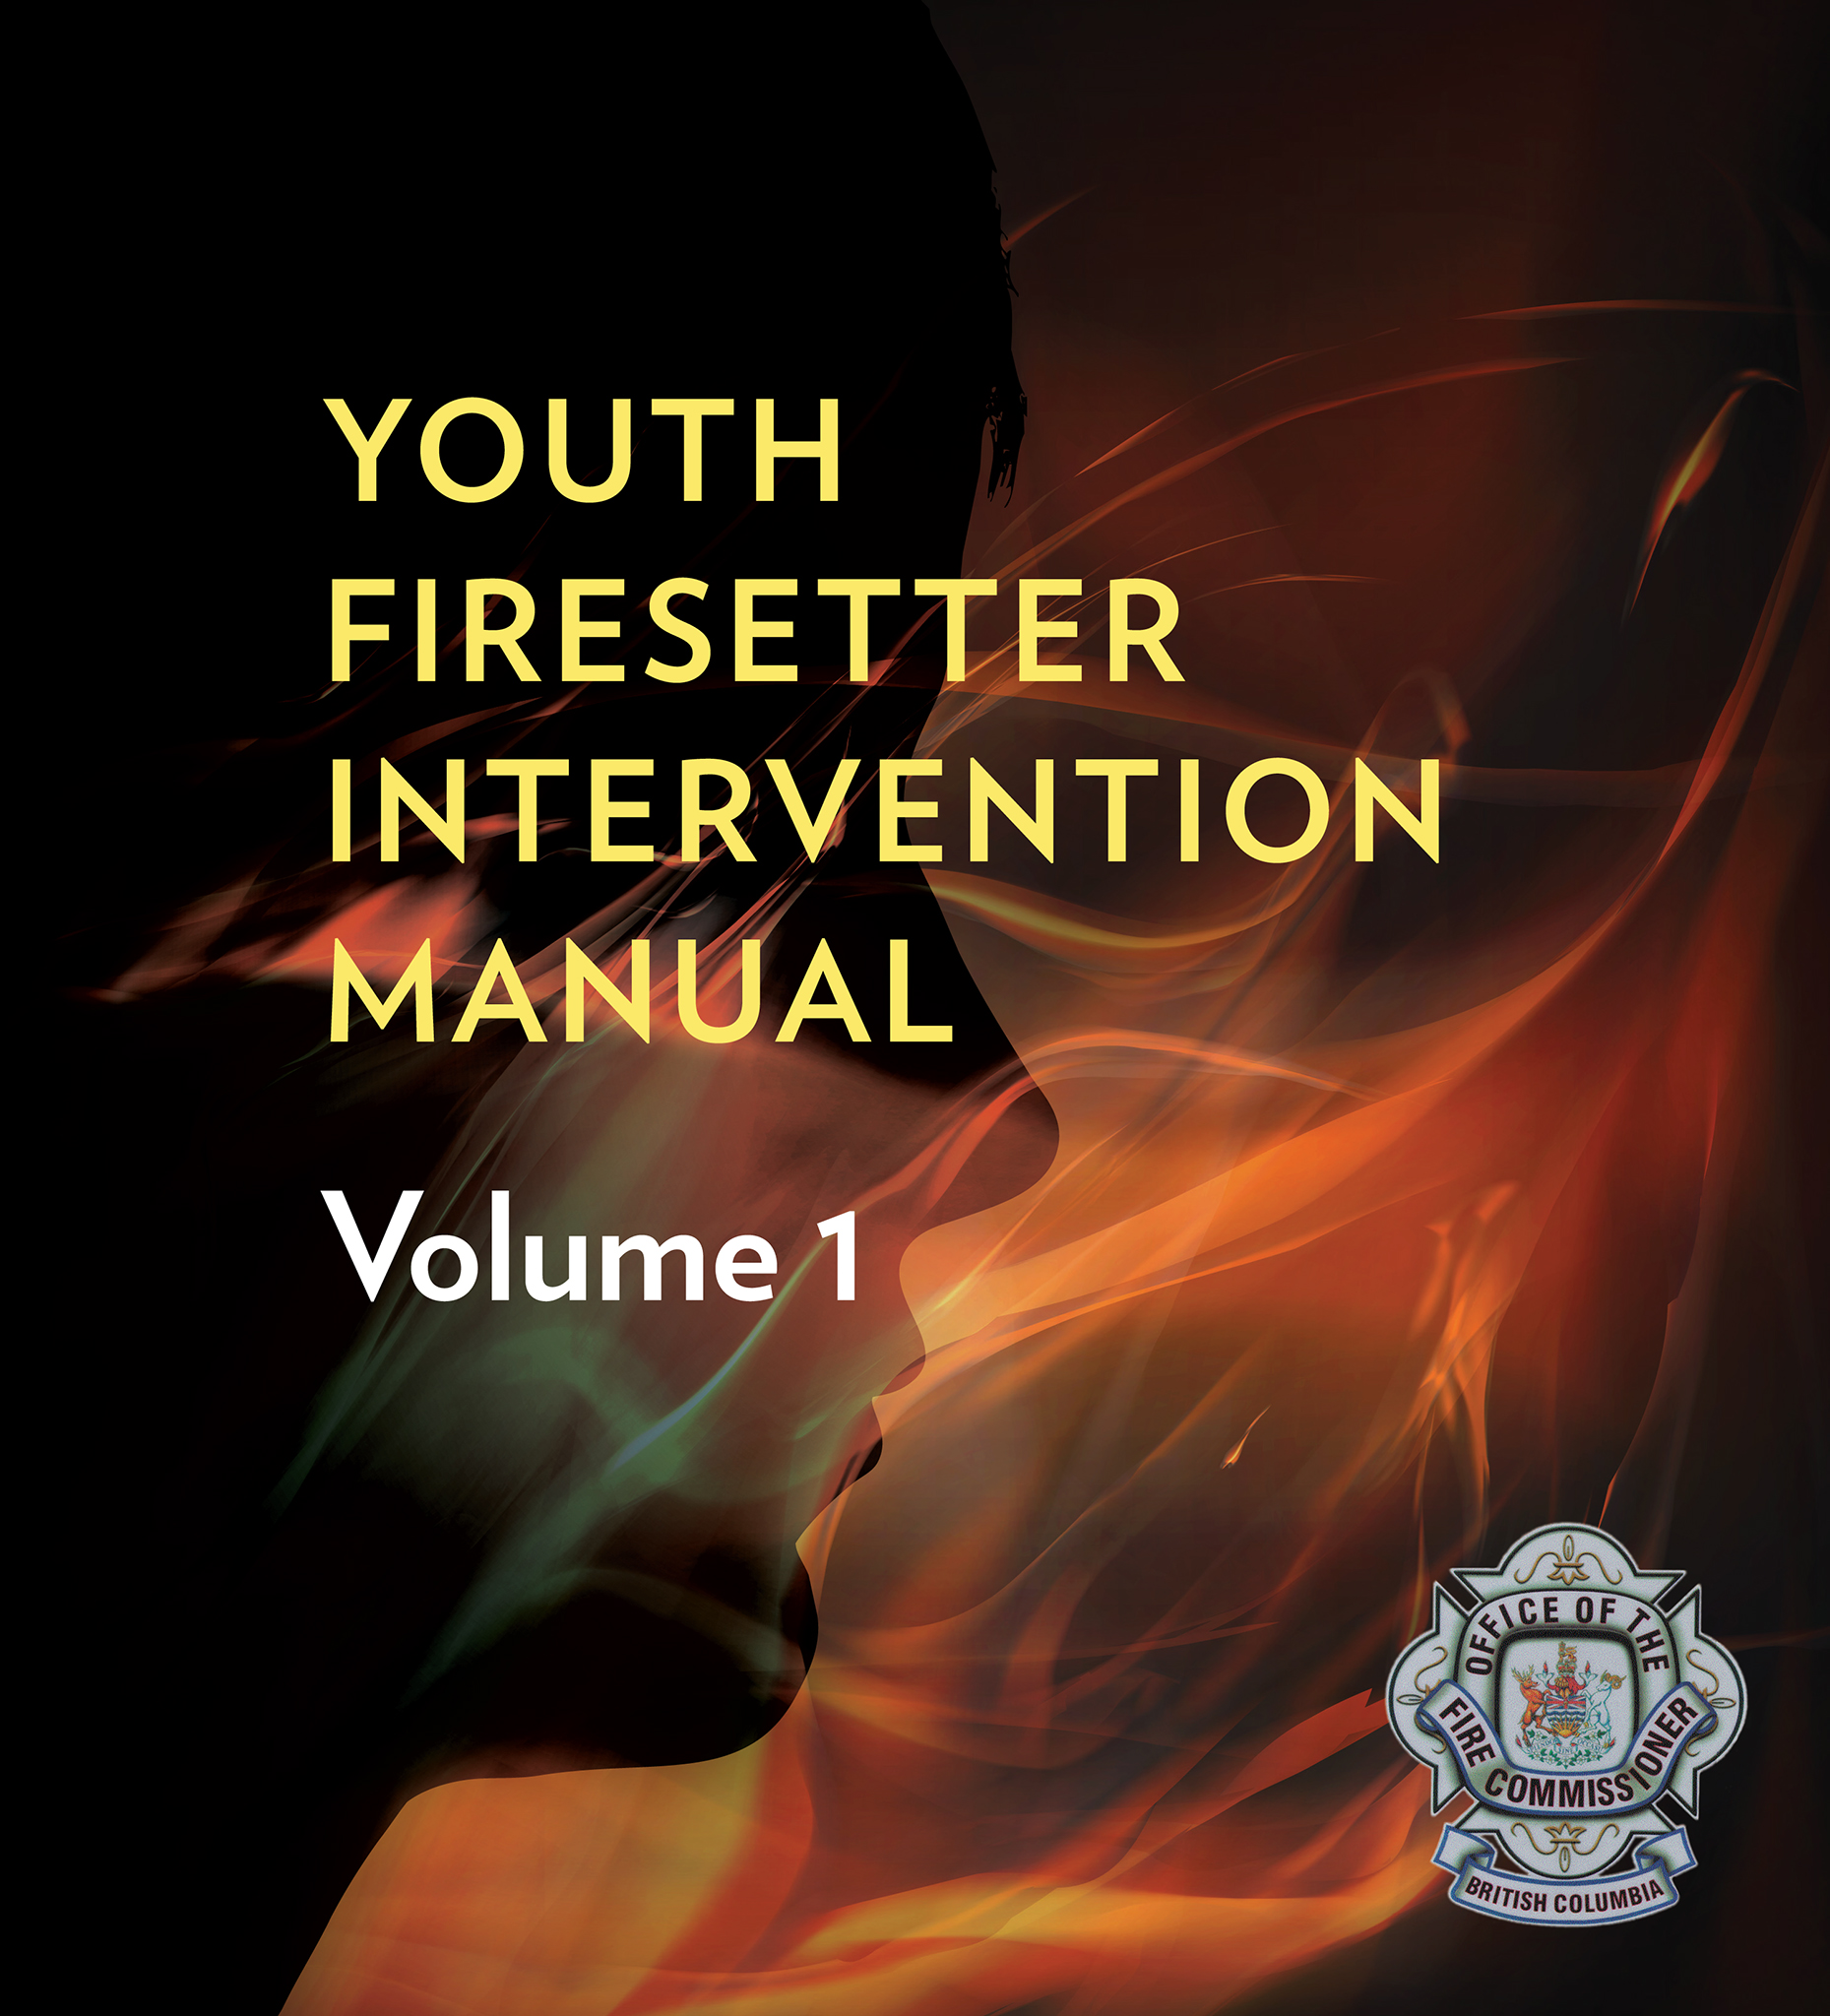 Youth Firesetter Intervention Manuals